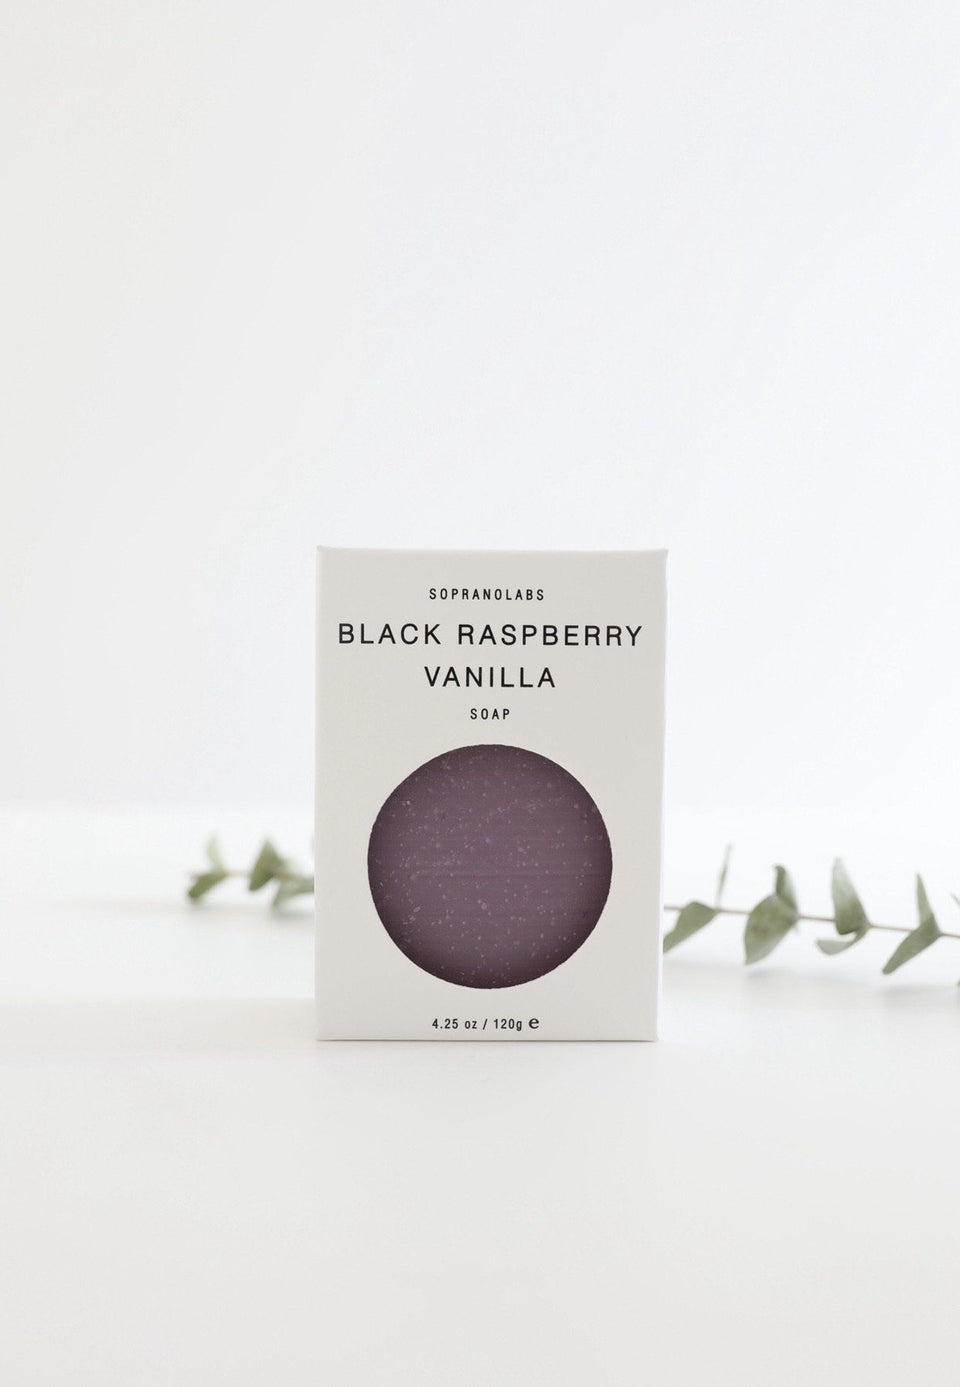 Black Raspberry Vanilla Vegan Soap. Gift for her